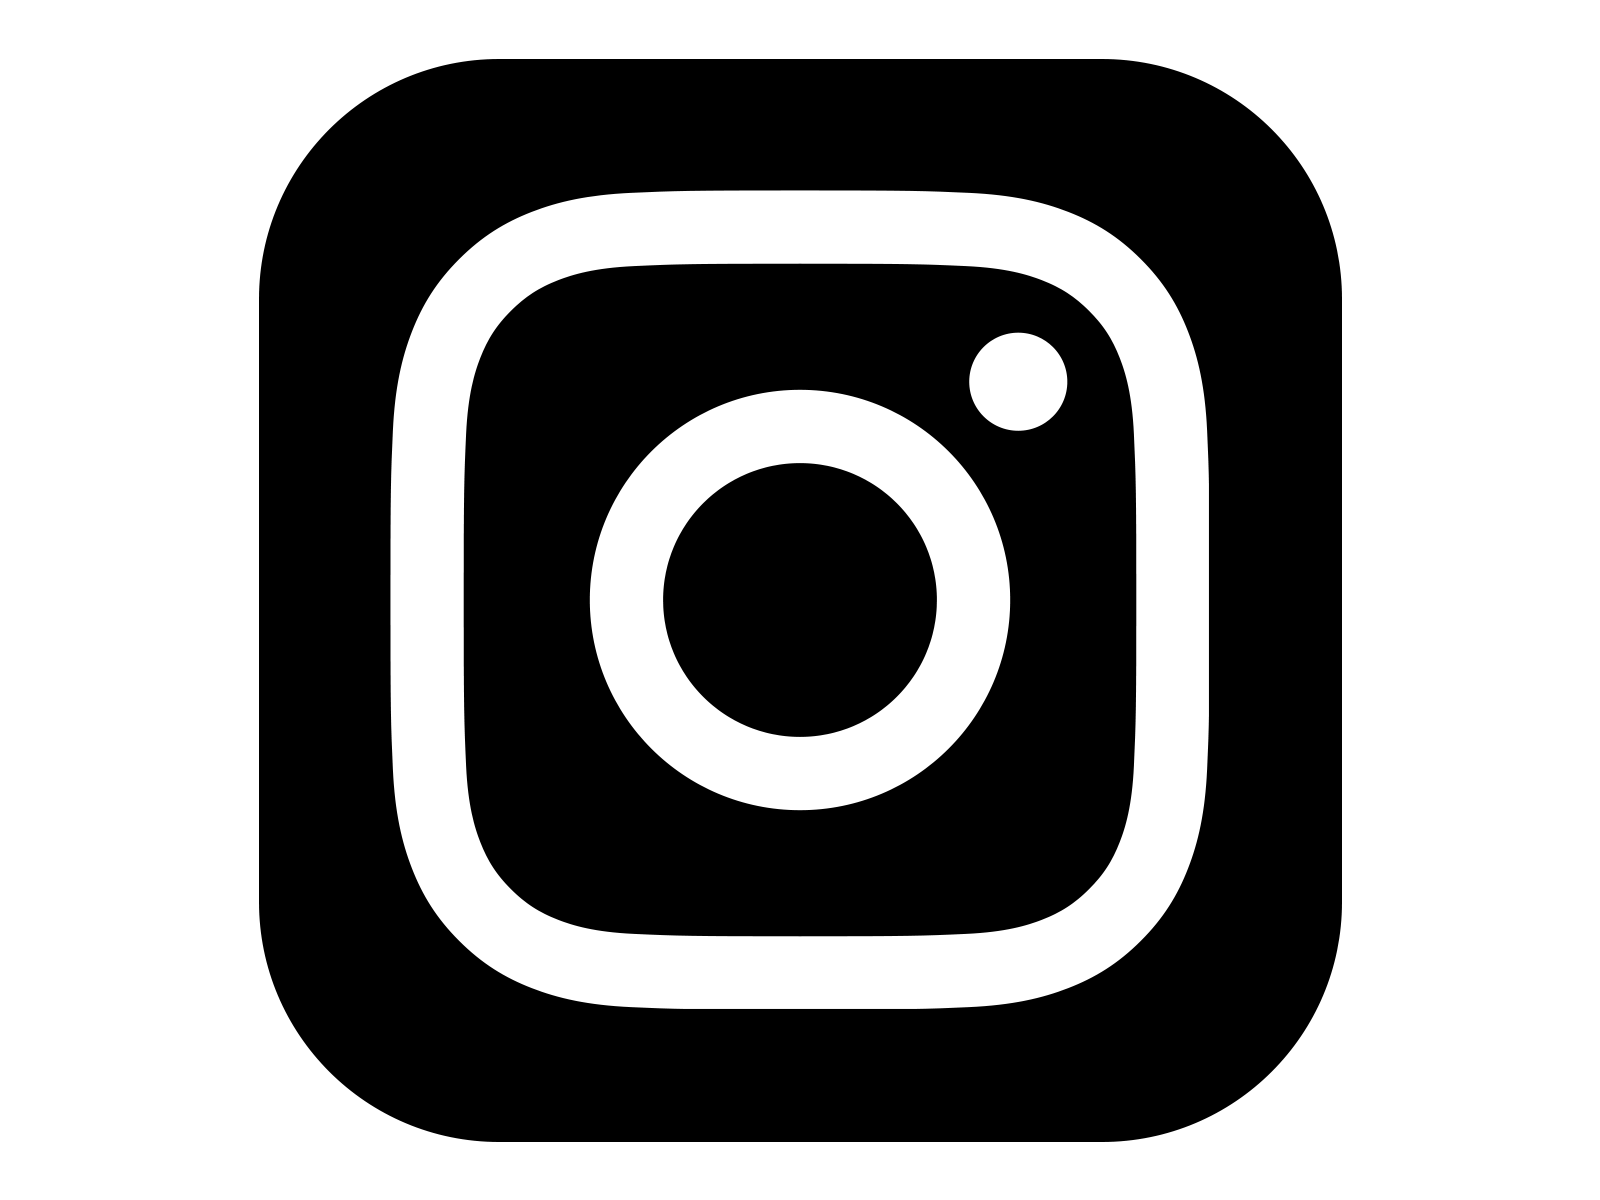 Instagram Icon White On Black In 2019 Instagram Logo